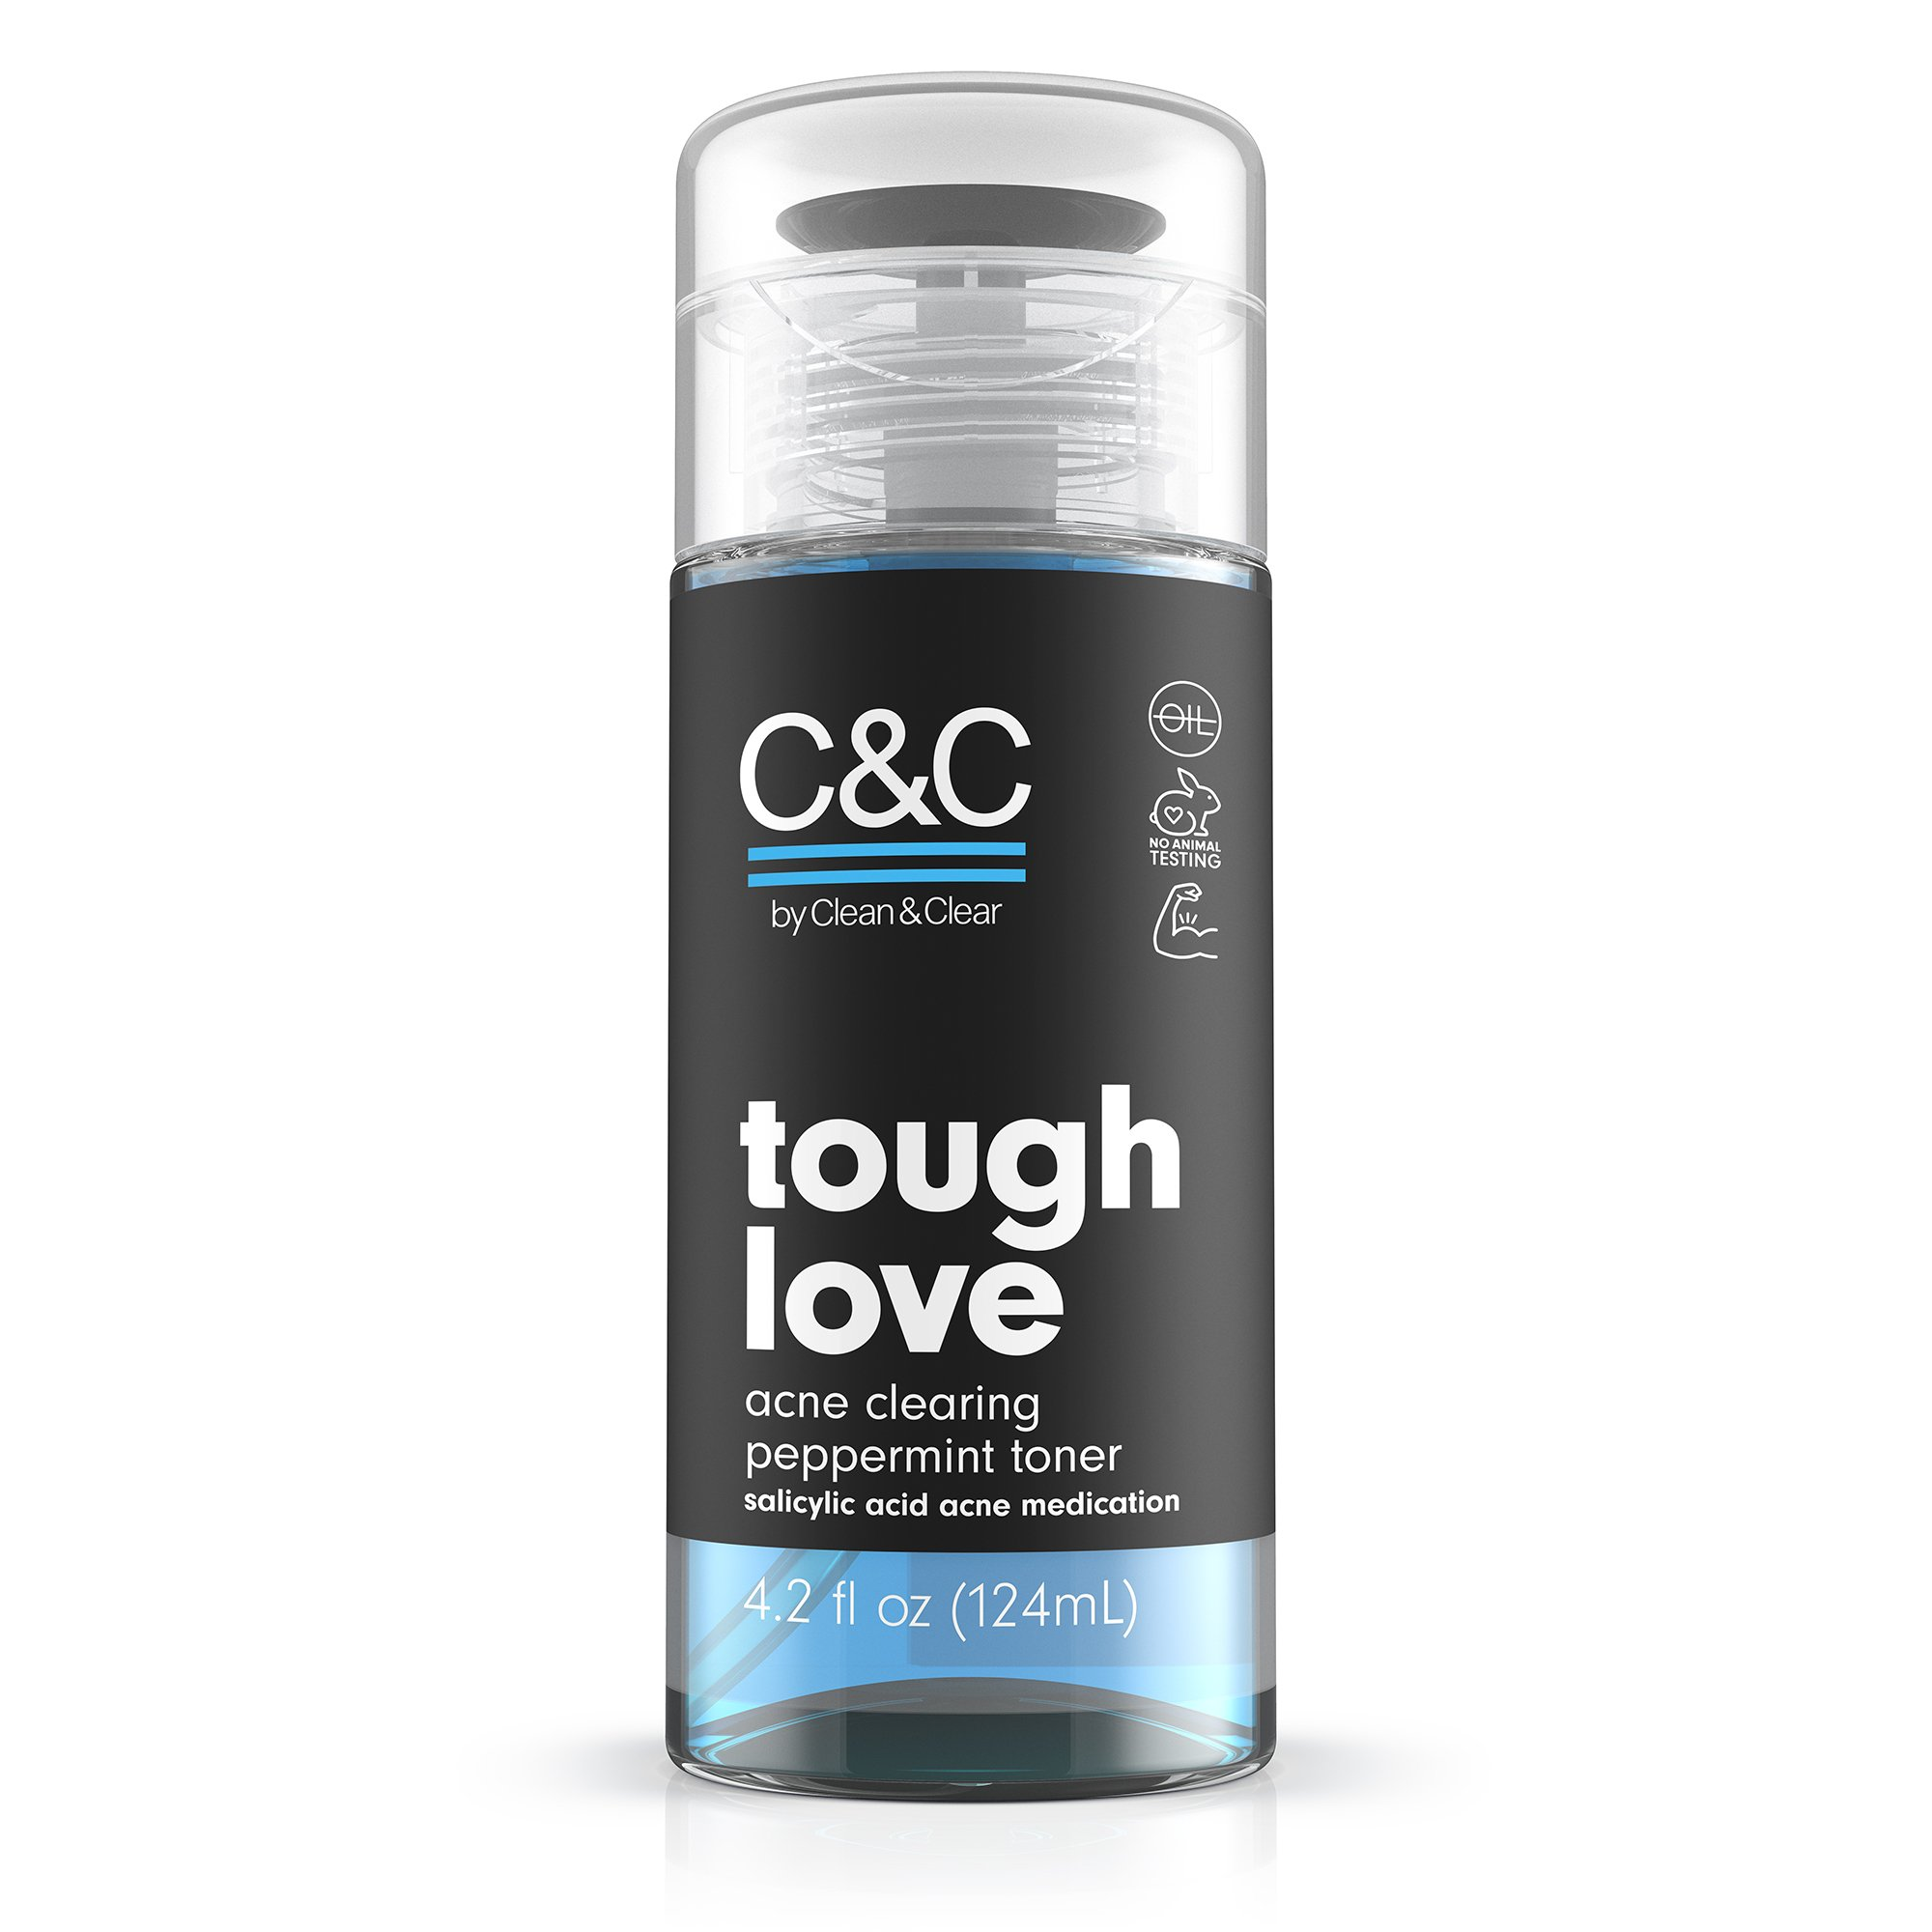 C&C by Clean & Clear Tough Love Acne Clearing Peppermint Facial Toner, With Glycerin and Salicylic Acid, Oil-free Toner for Oil Prone Skin, Not Tested on Animals, 4.2 fl. oz.